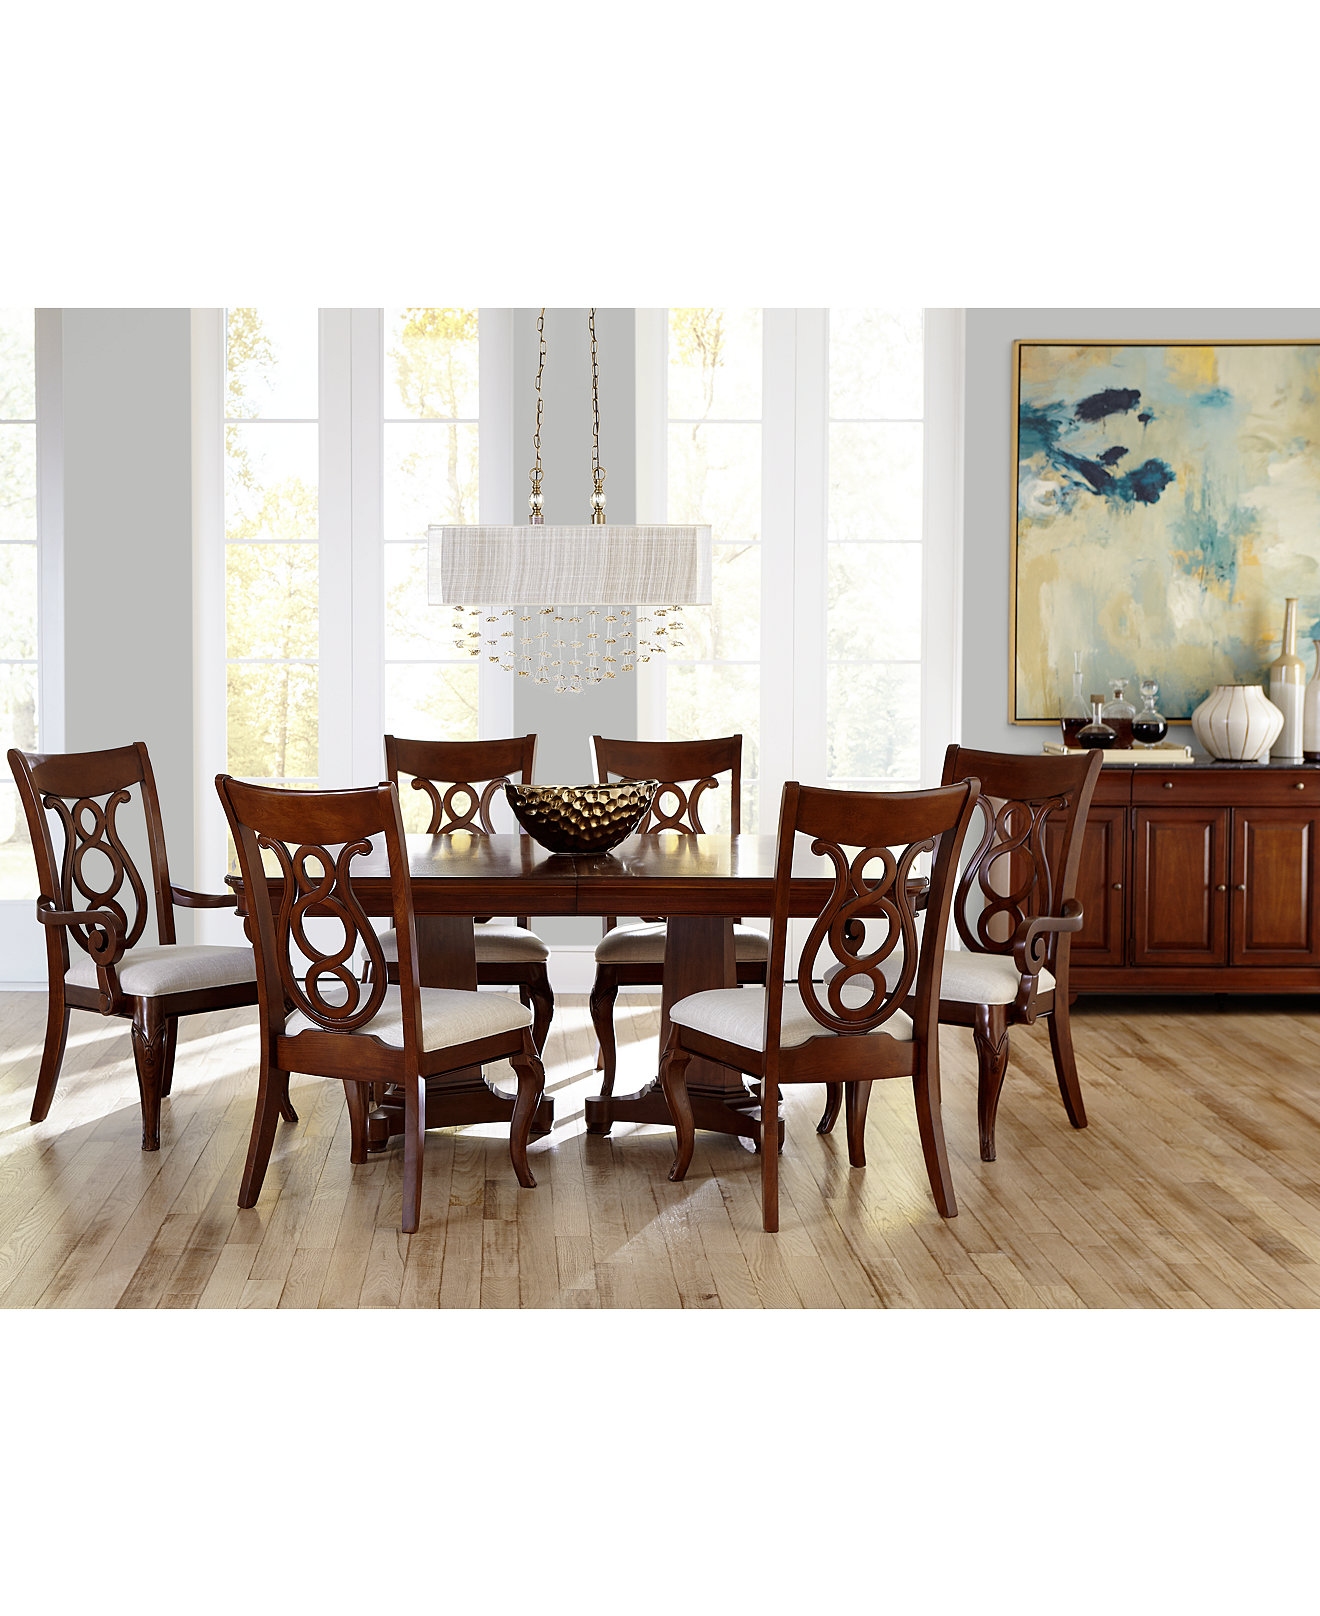 Dining Room Furniture Macy's